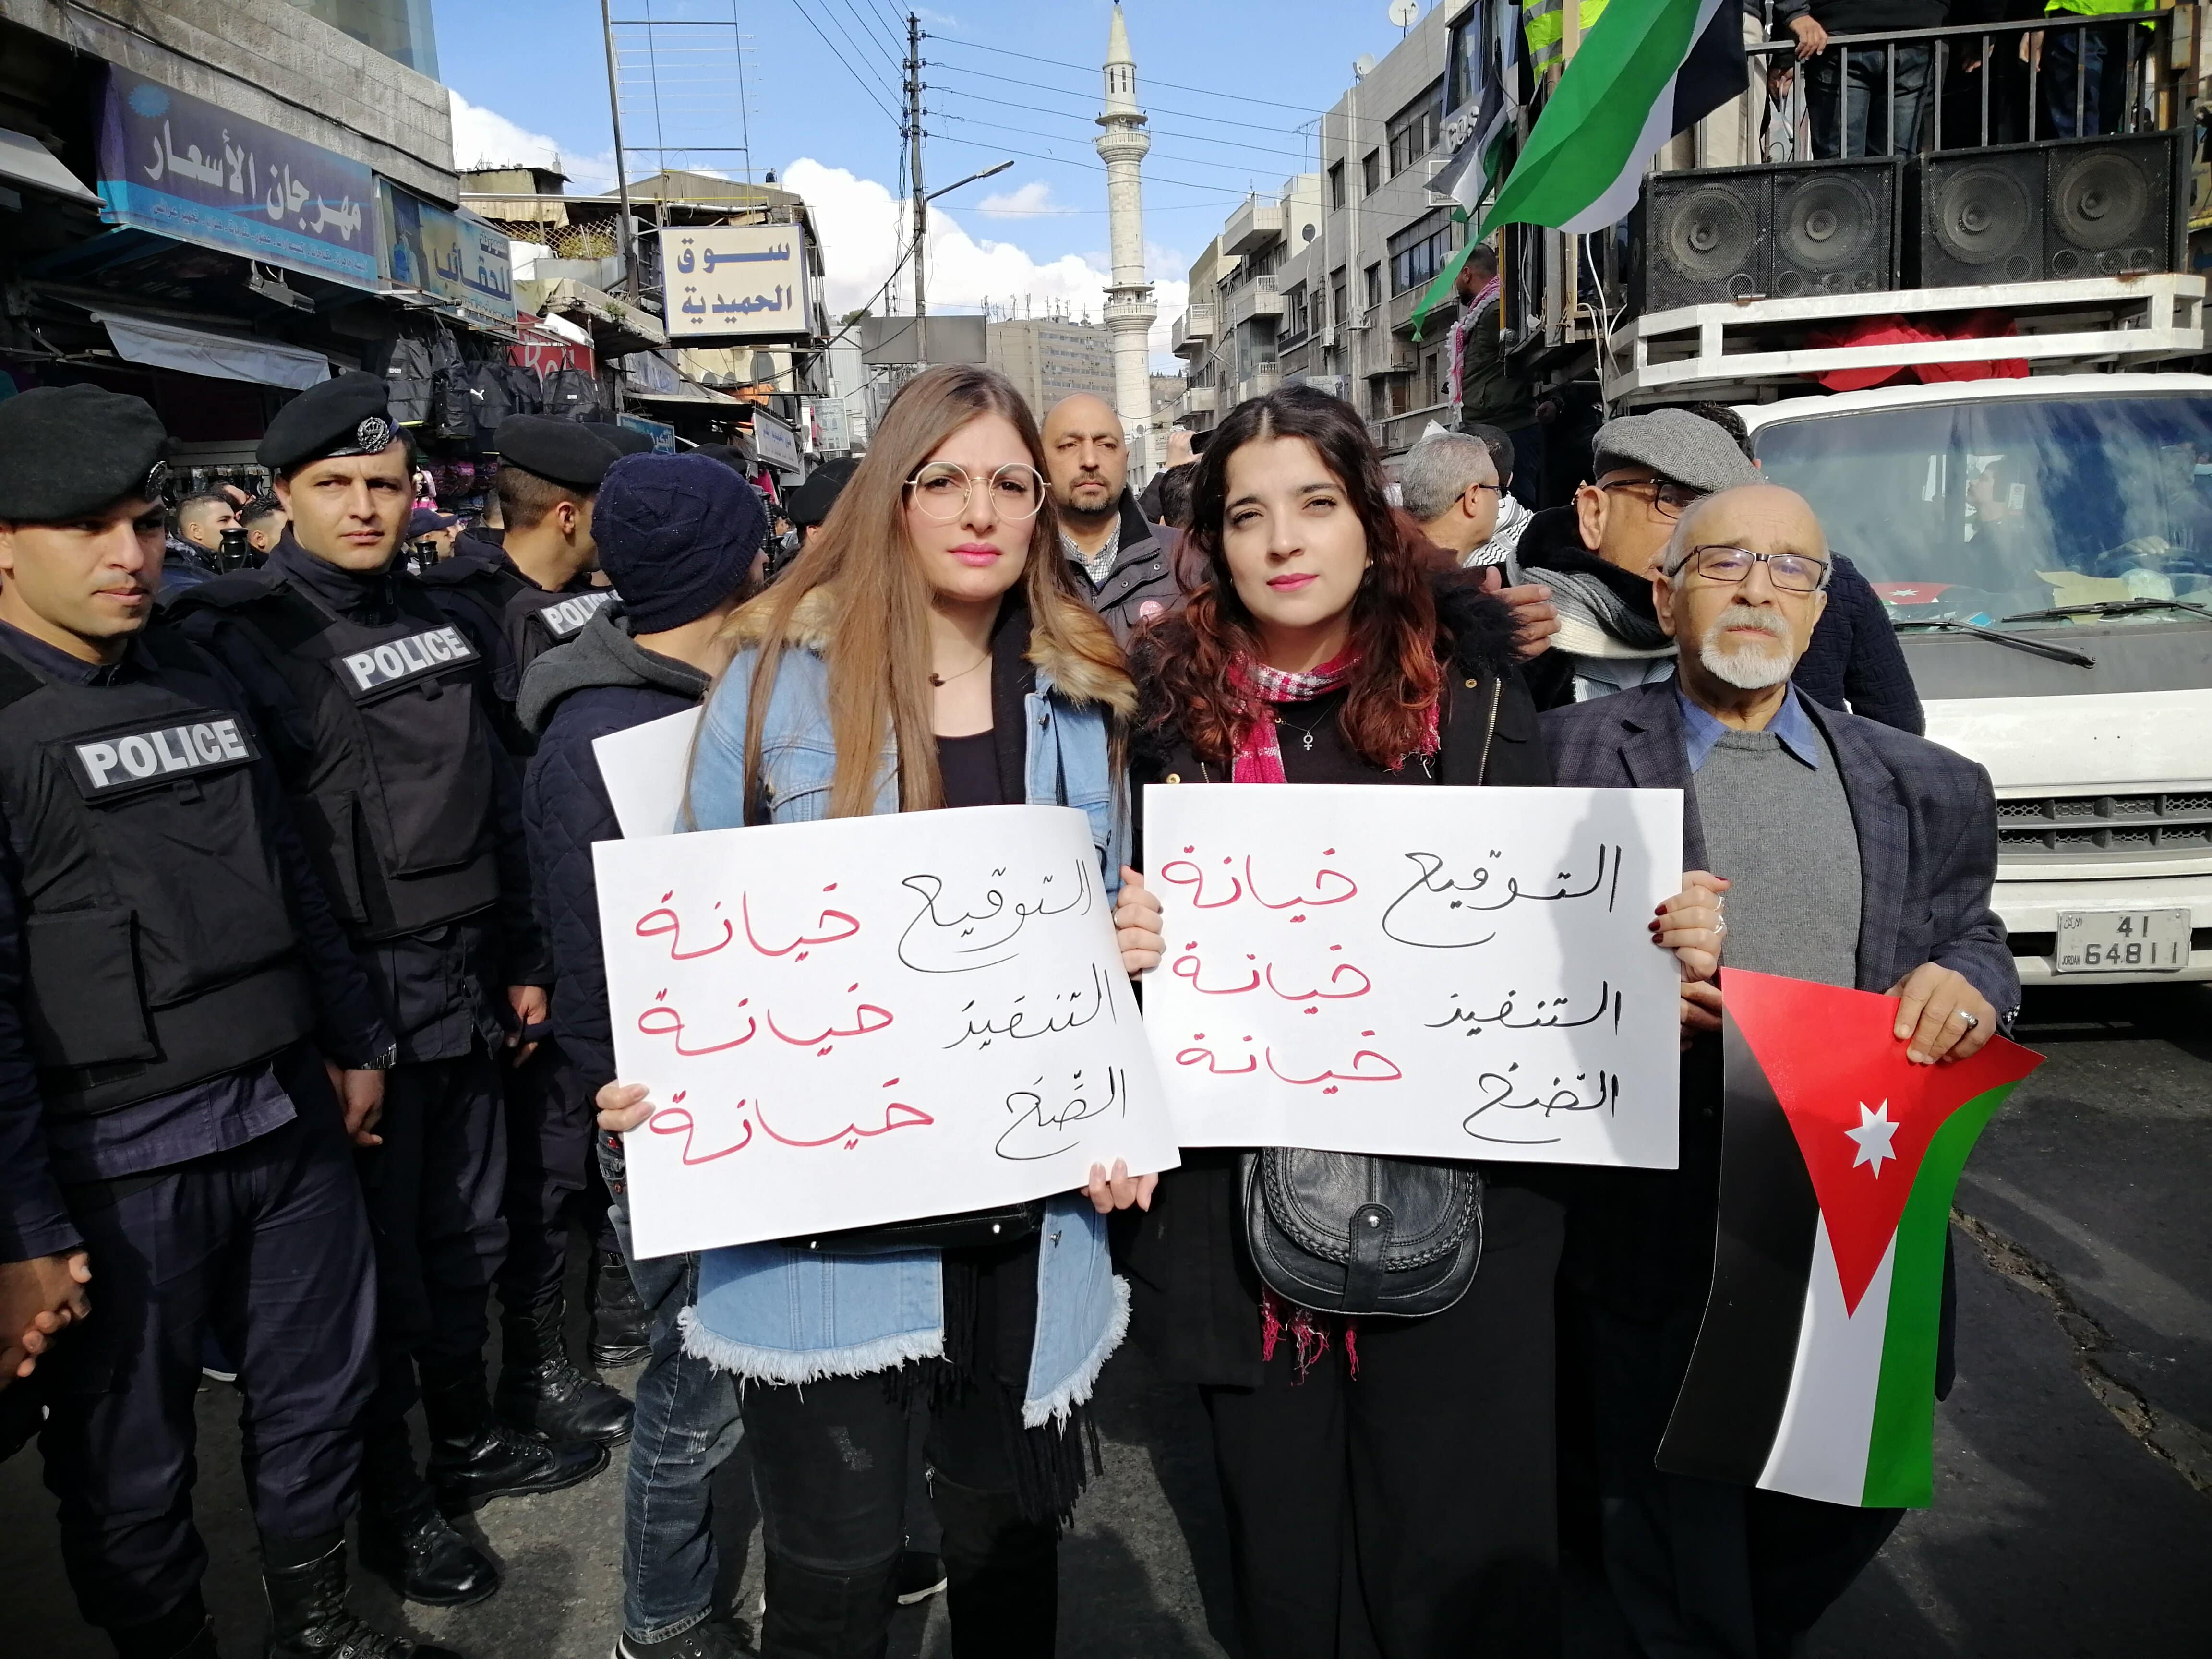 Protesters denounce Jordan's gas deal with Israel